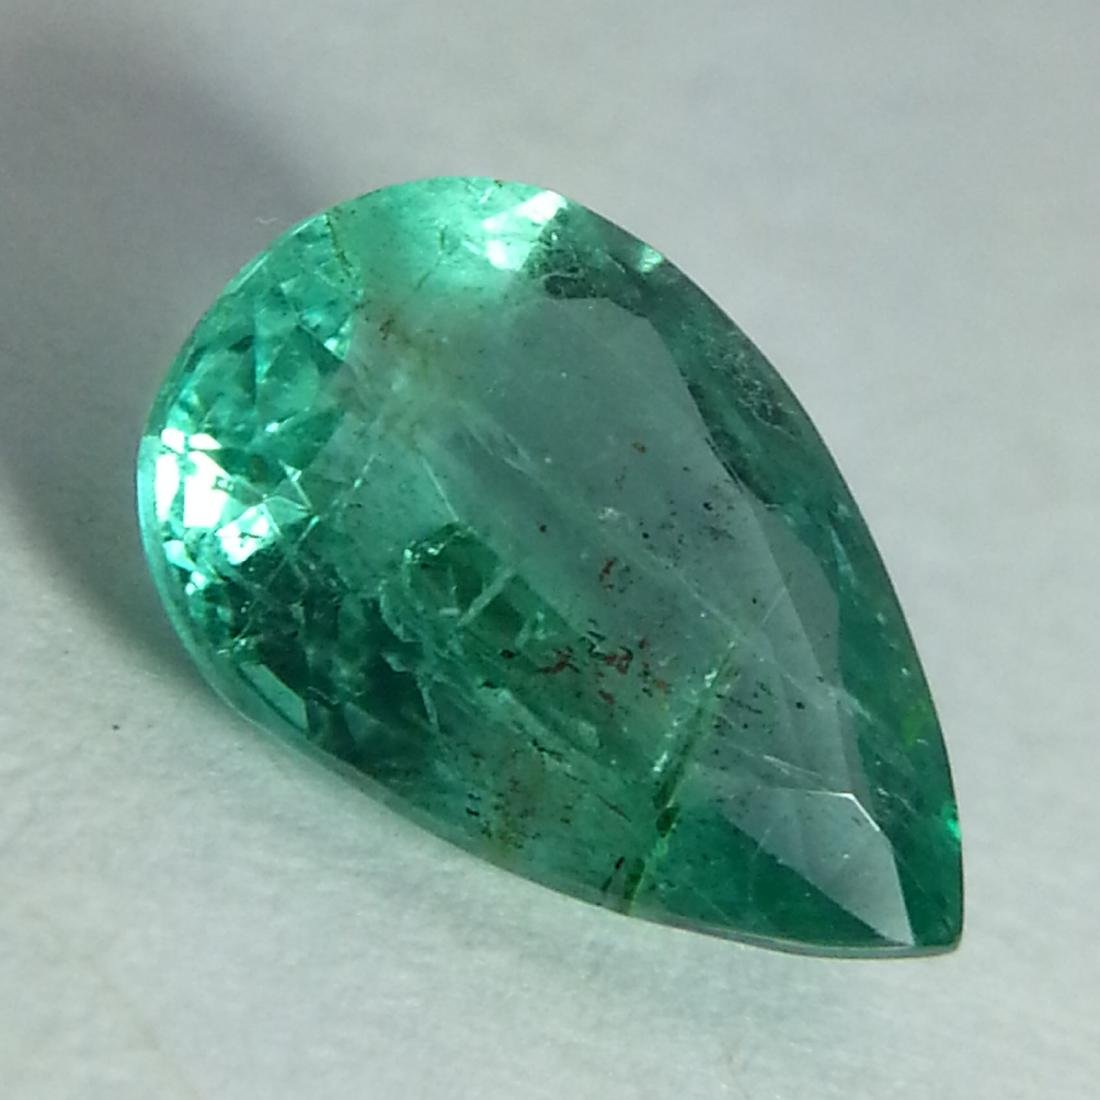 Lovely Pear Cut Natural Emerald - 1.46 ct